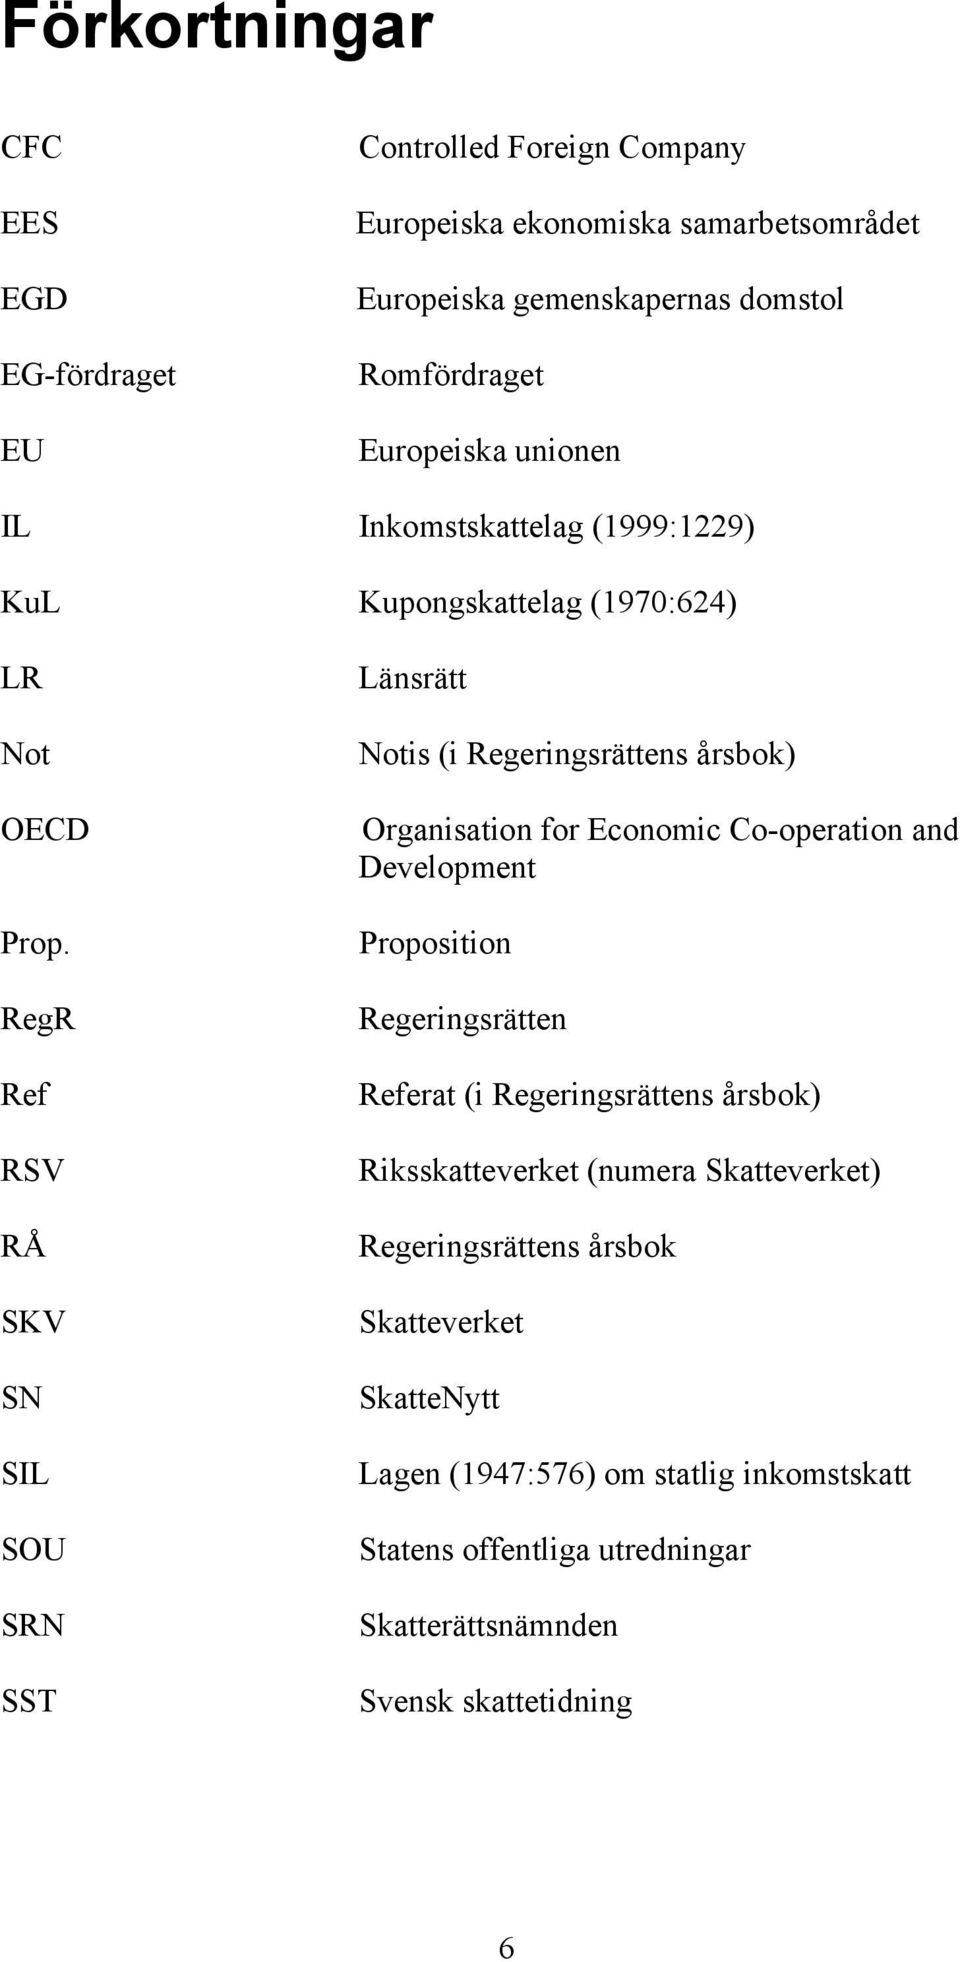 RegR Ref RSV RÅ SKV SN SIL SOU SRN SST Länsrätt Notis (i Regeringsrättens årsbok) Organisation for Economic Co-operation and Development Proposition